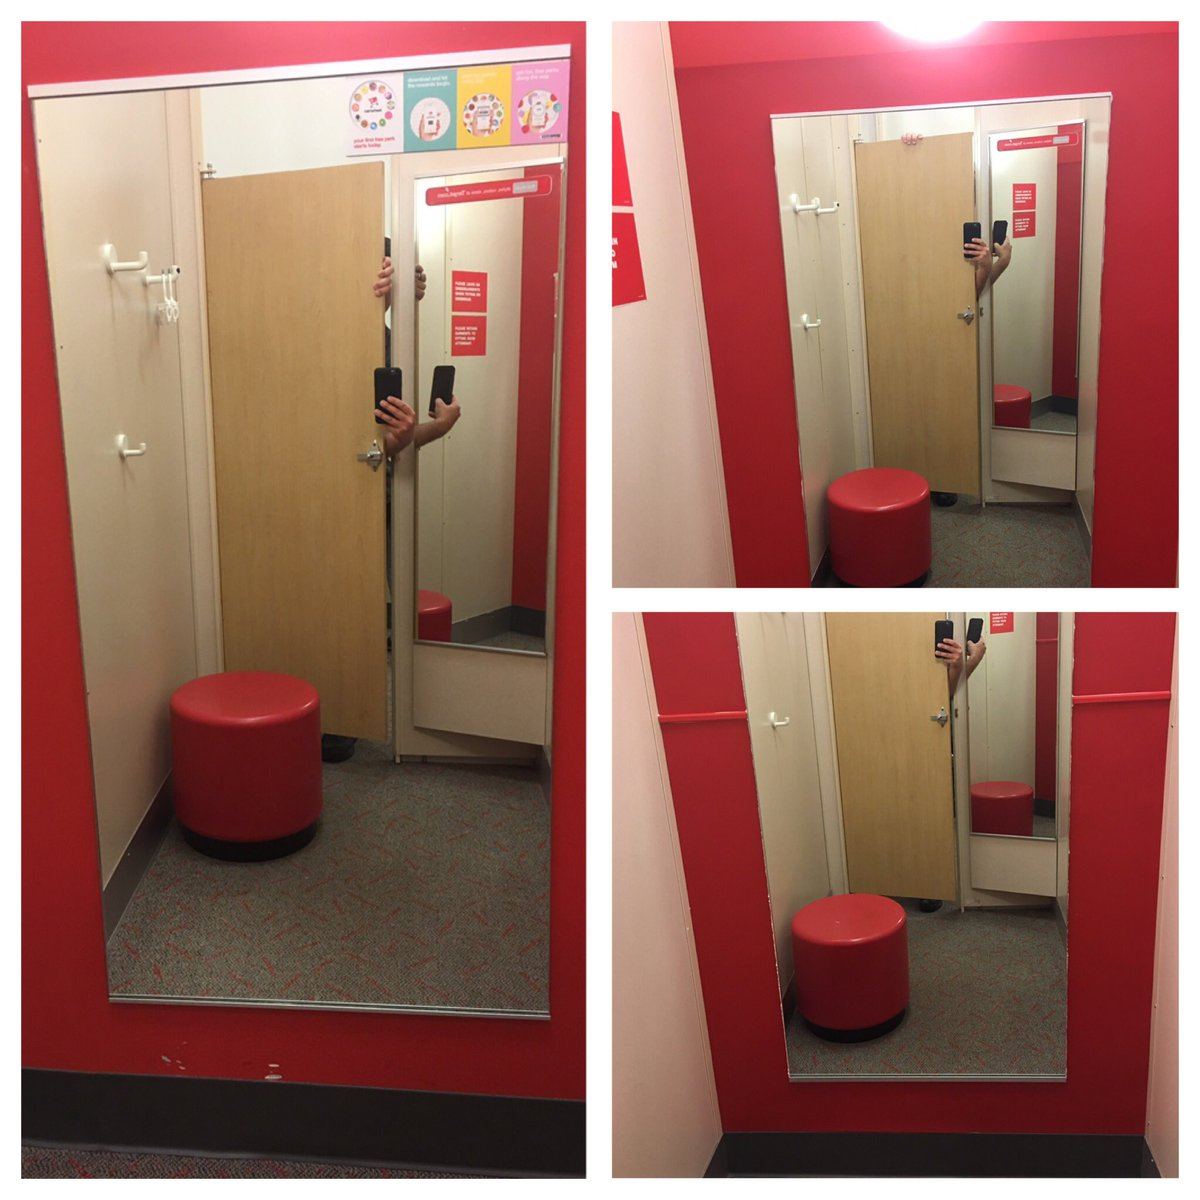 Some before and after pictures of the #revamping of our fitting rooms! #T2320ModelStore #PropertyManagement #OneTeam<br>http://pic.twitter.com/KFQOnhwGrH